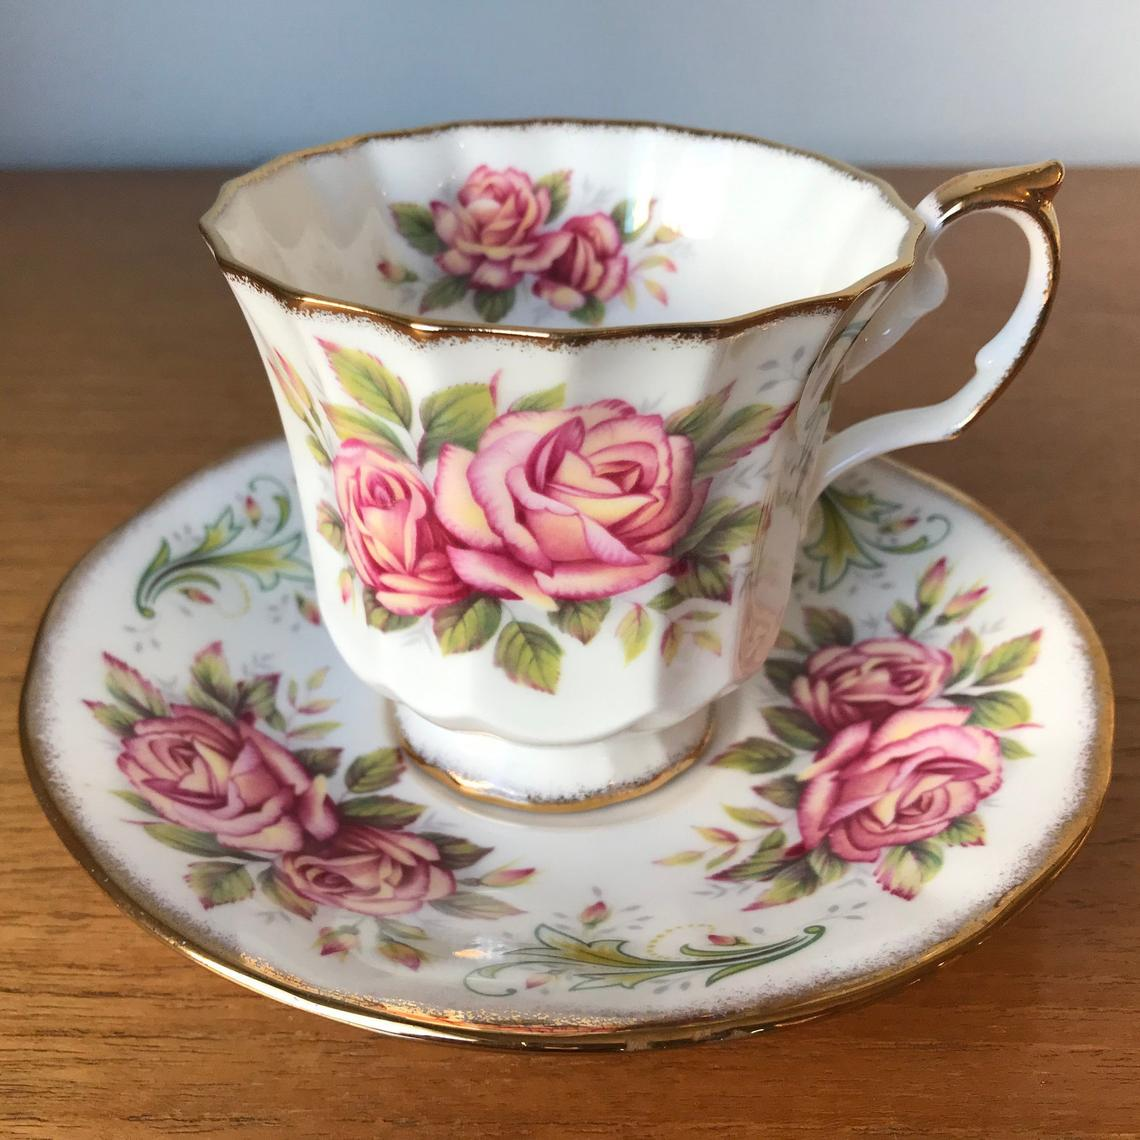 Elizabethan Cup and Saucer, Pink Rose Teacup and Saucer, Anniversary Rose Series Handel Tea Cup and Saucer, Bone China